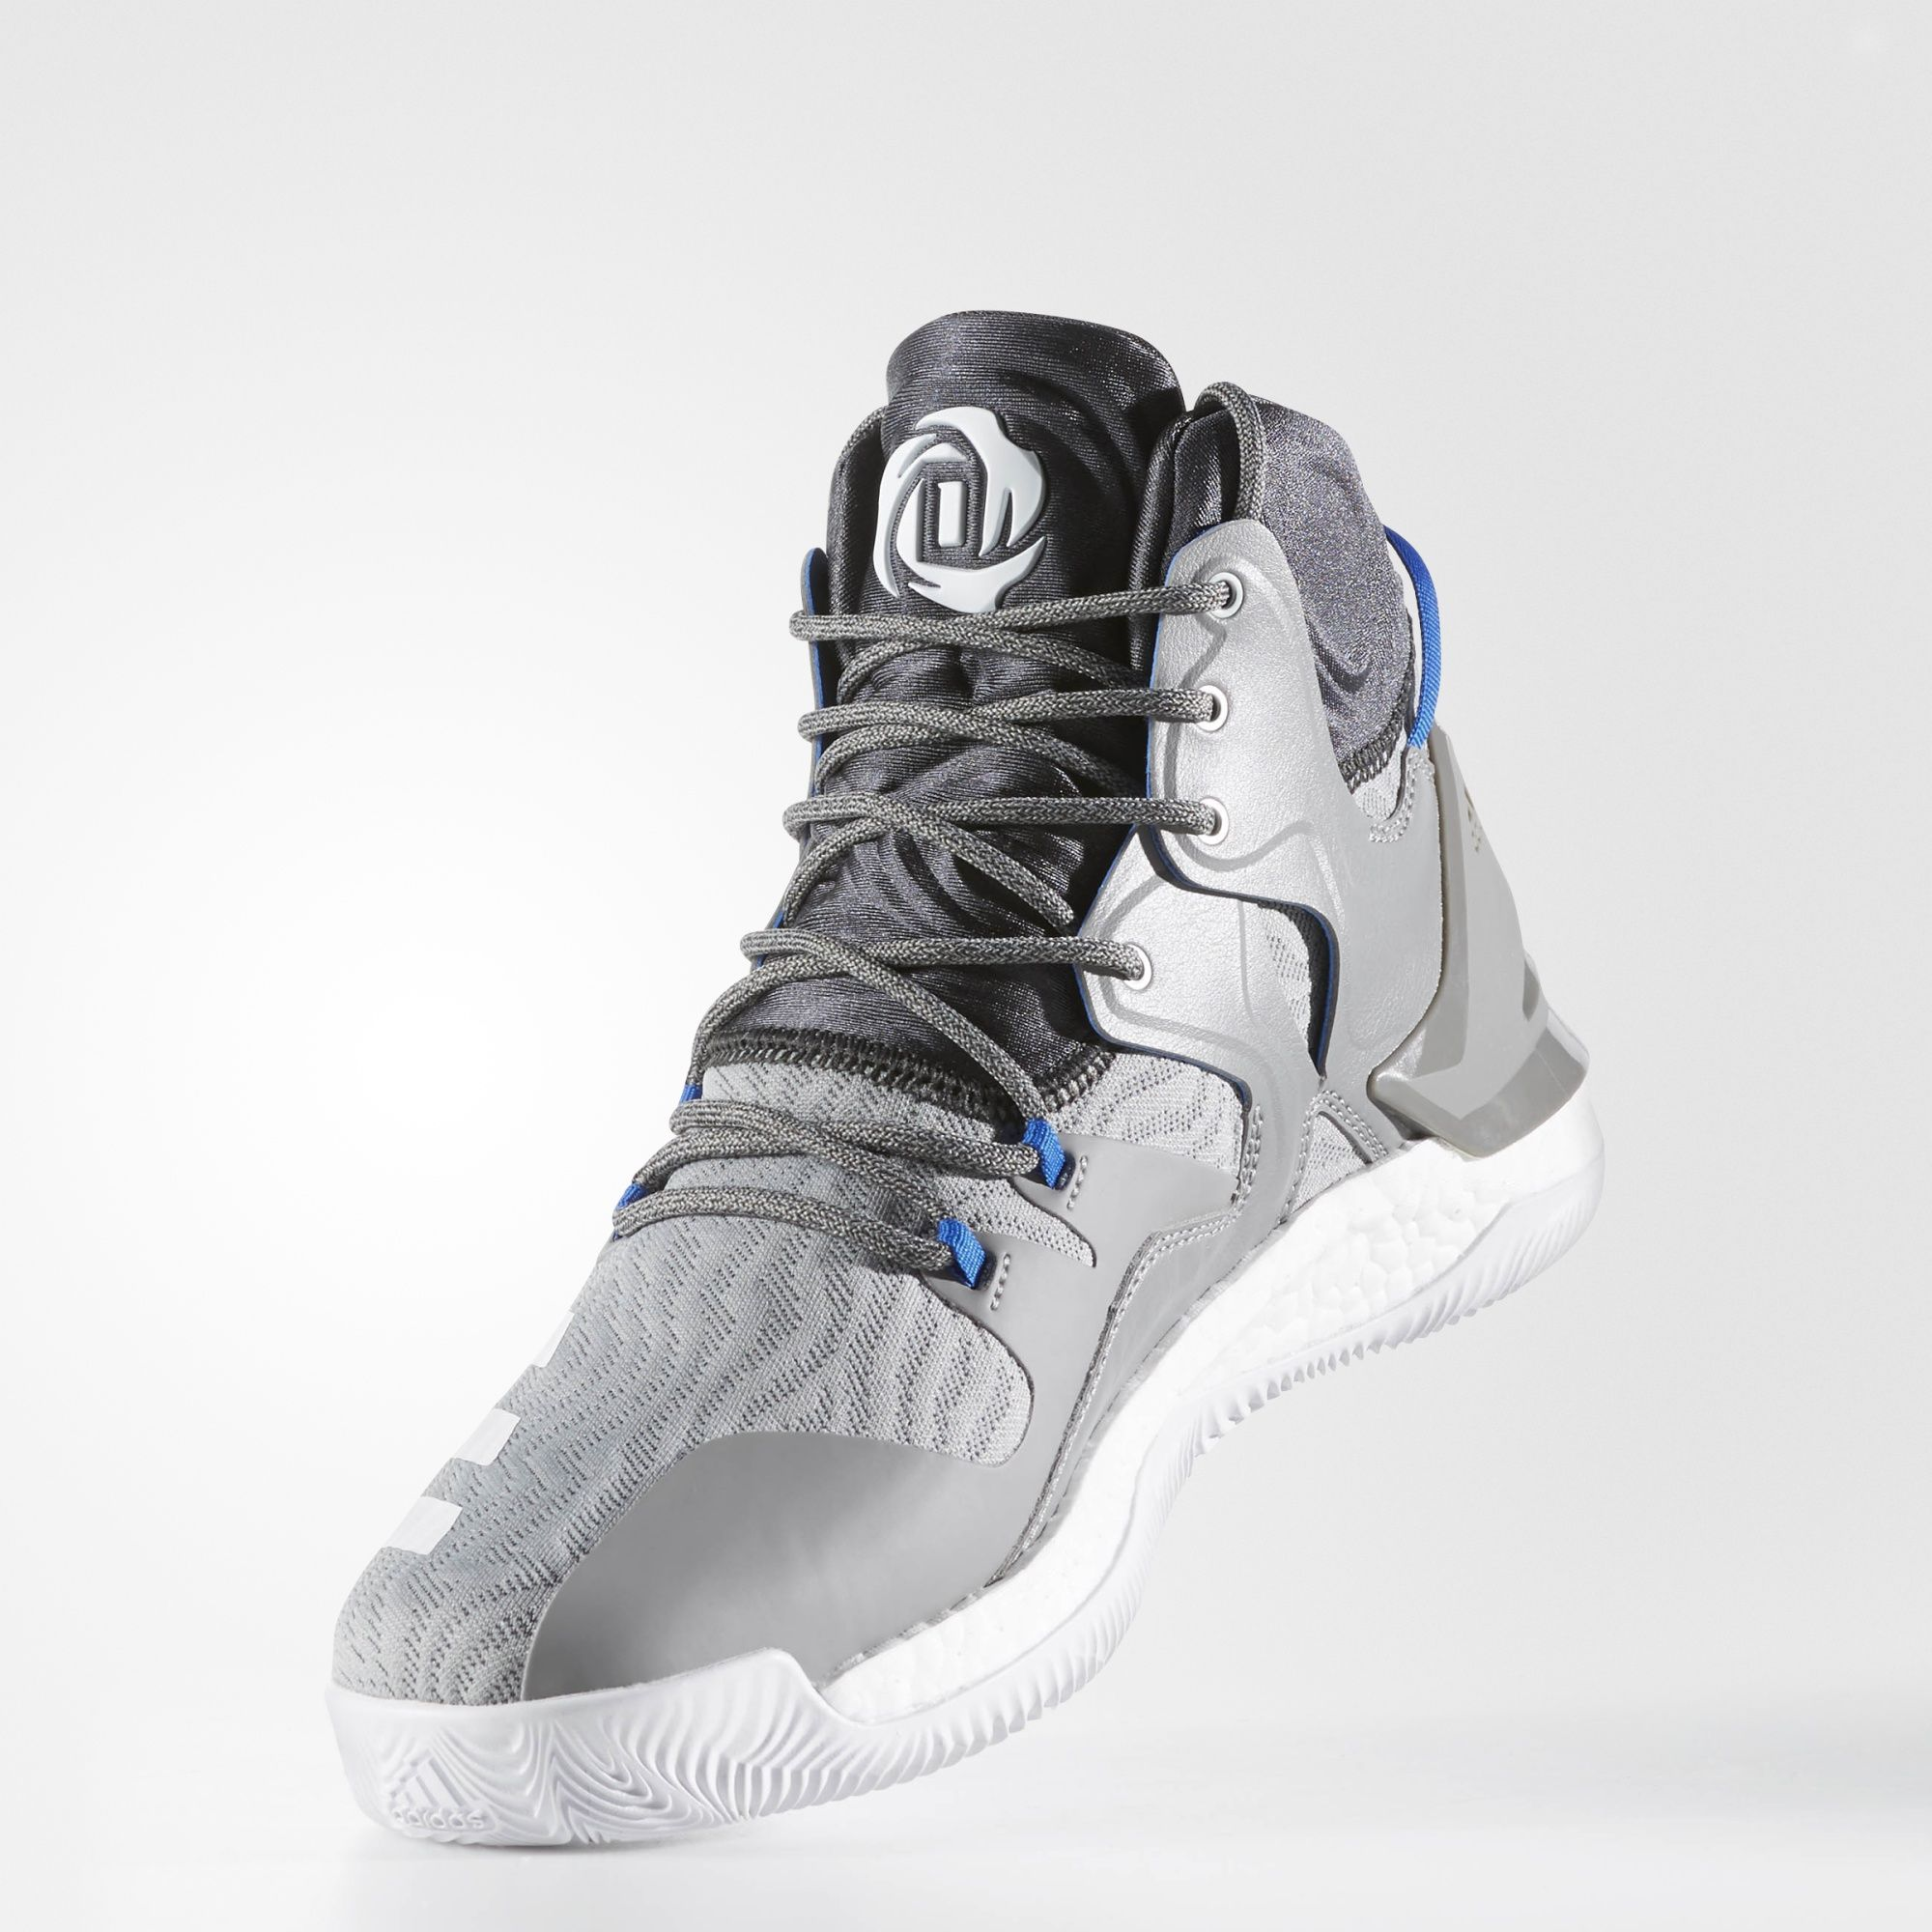 finest selection fd7c4 10c8c czech if you were interested in this colorway it is available now at select  adidas hoops